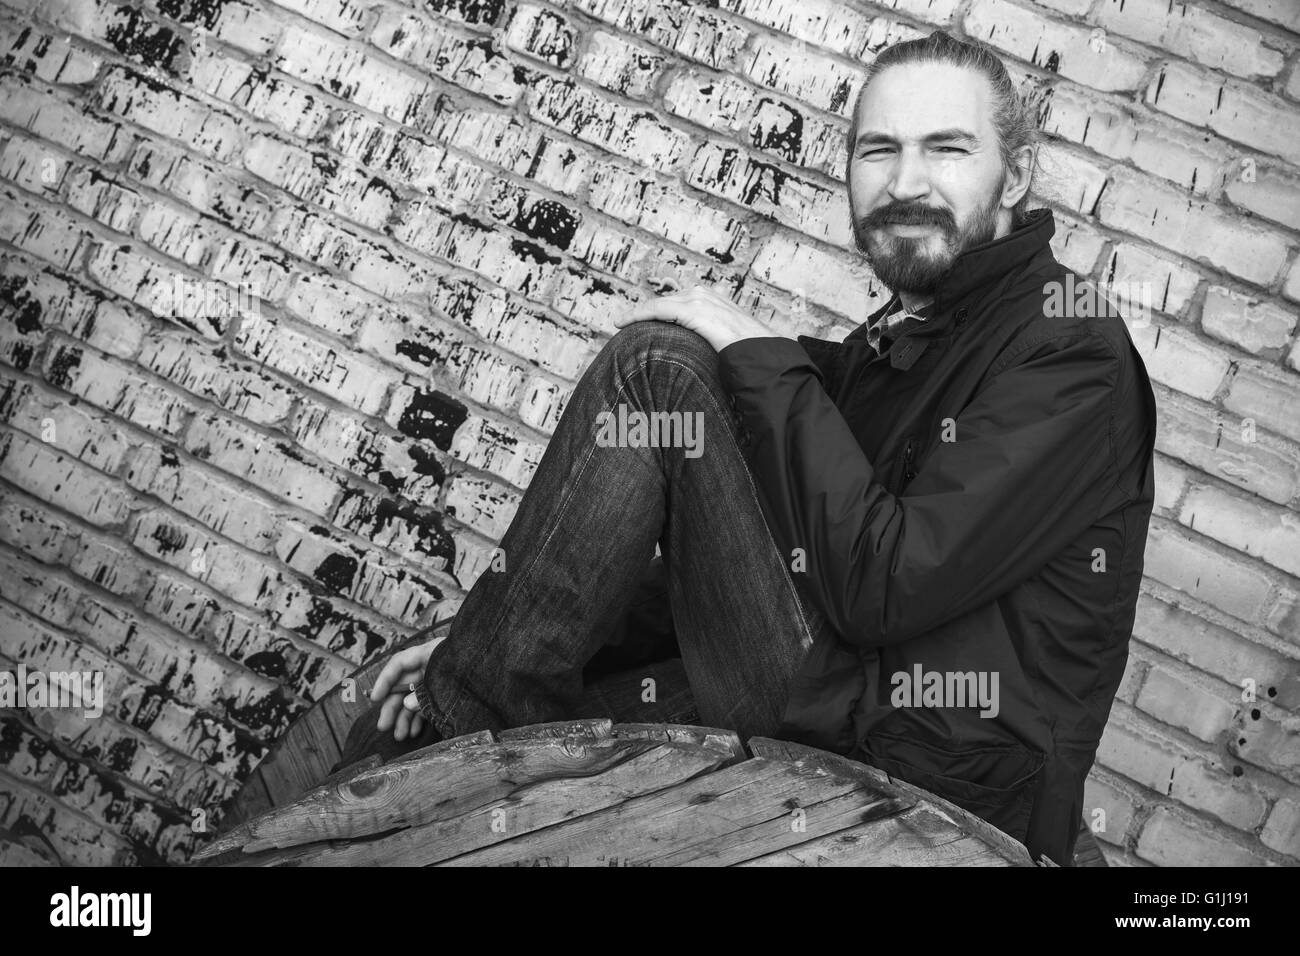 Outdoor portrait of young bearded Asian man in black over gray urban grungy brick wall background, black and white - Stock Image